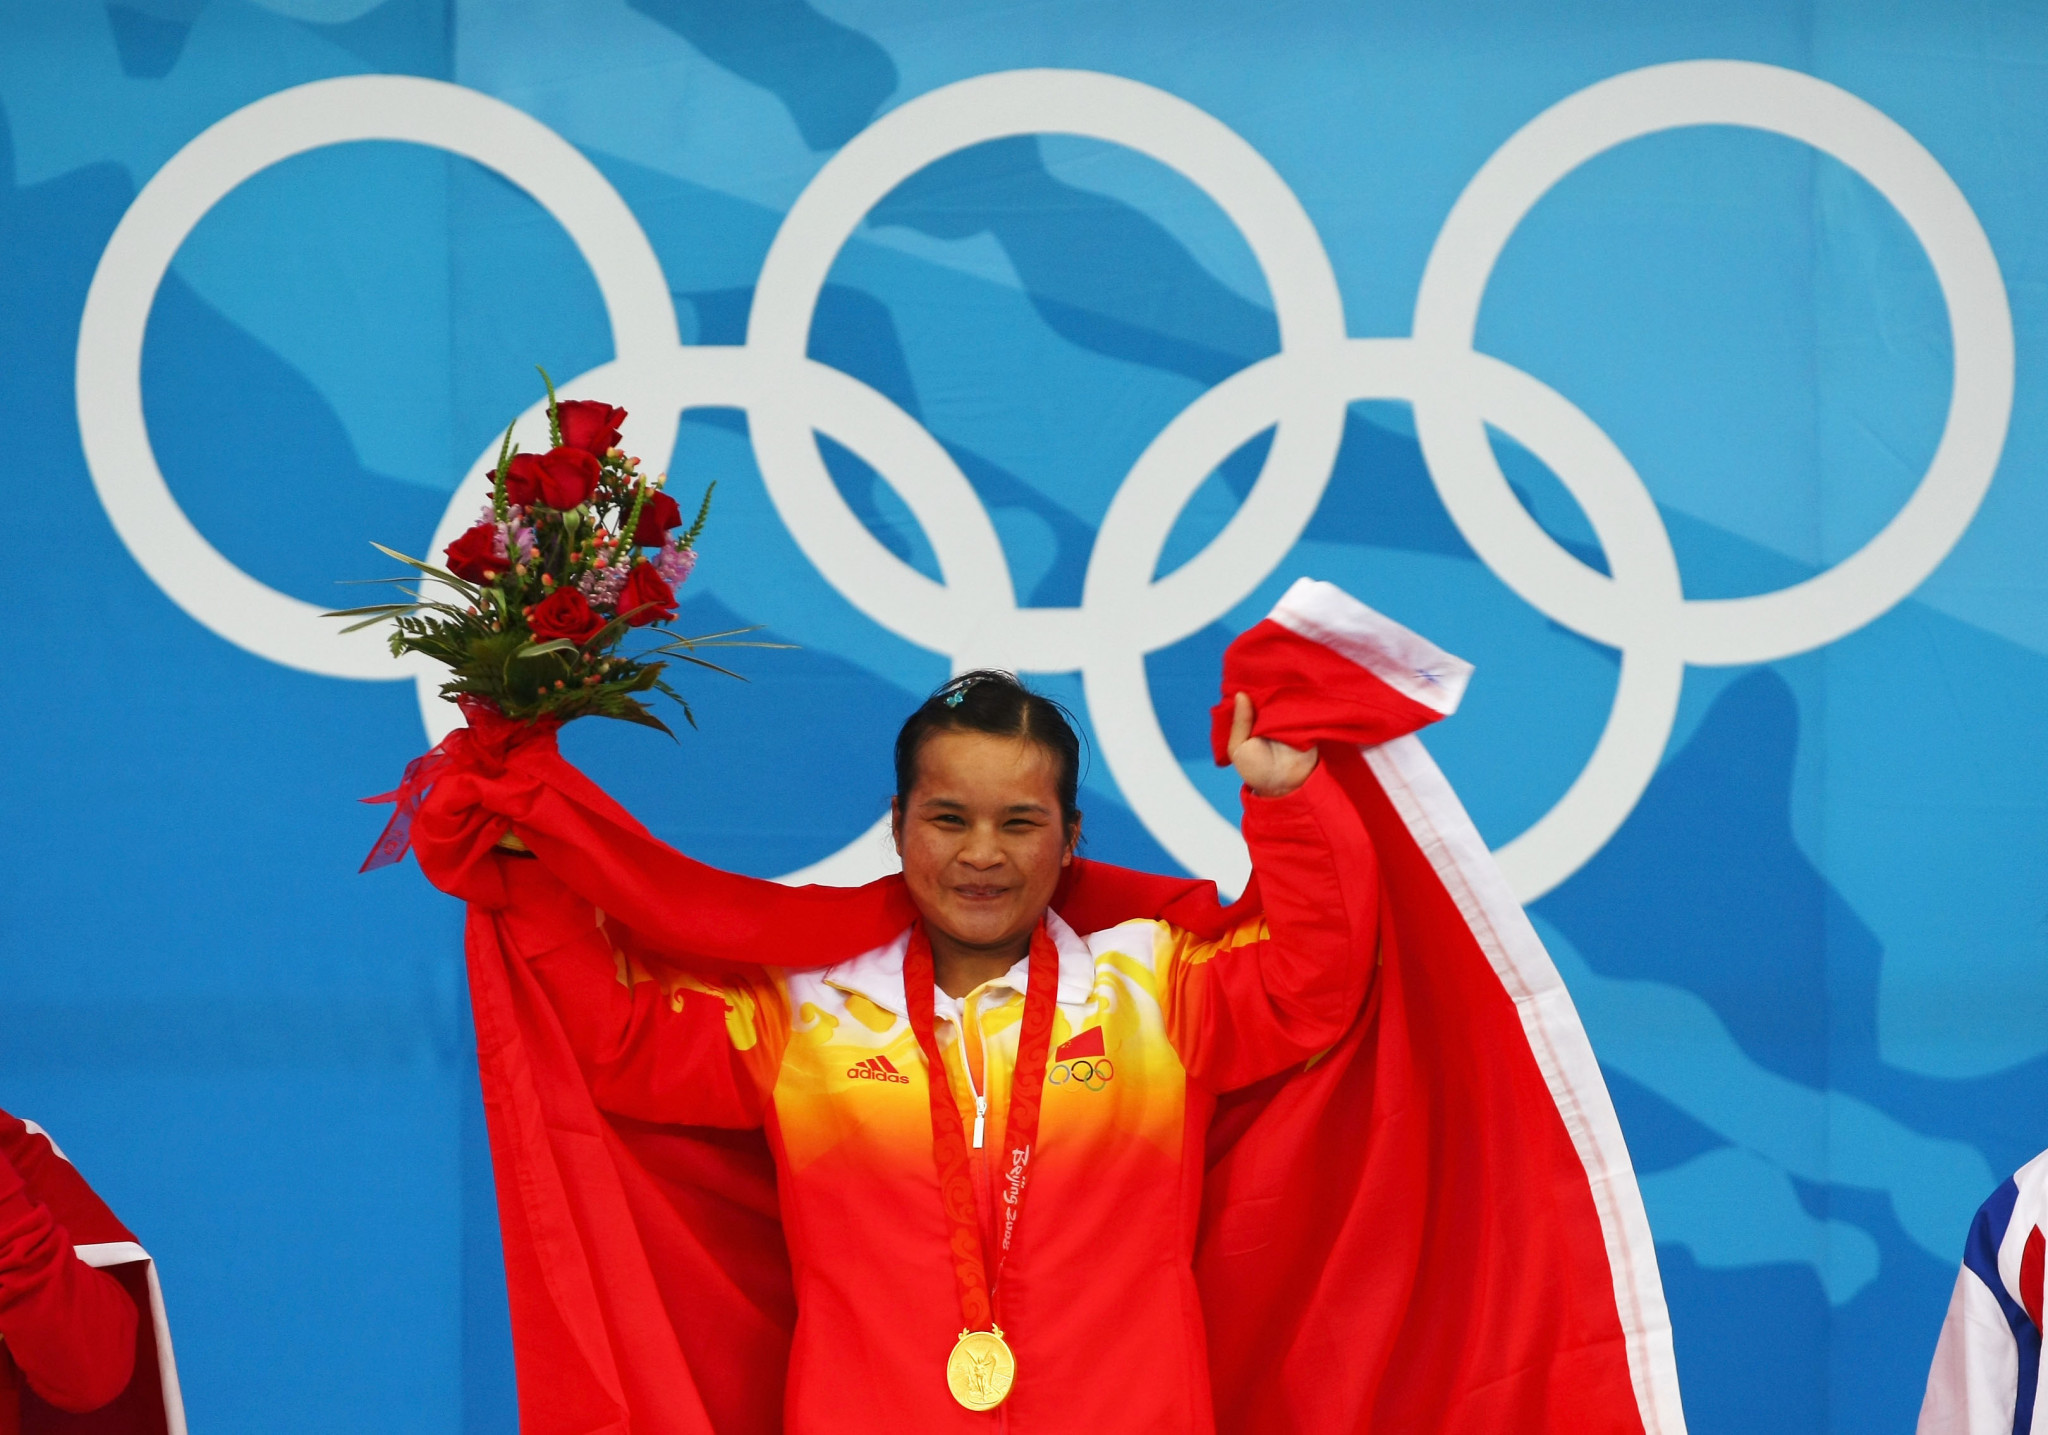 Xiexia Chen is among Chinese weightlifters stripped of Olympic gold medals at Beijing 2008 after samples were retested and were positive, leading to the country being banned for one-year by the IWF ©Getty Images